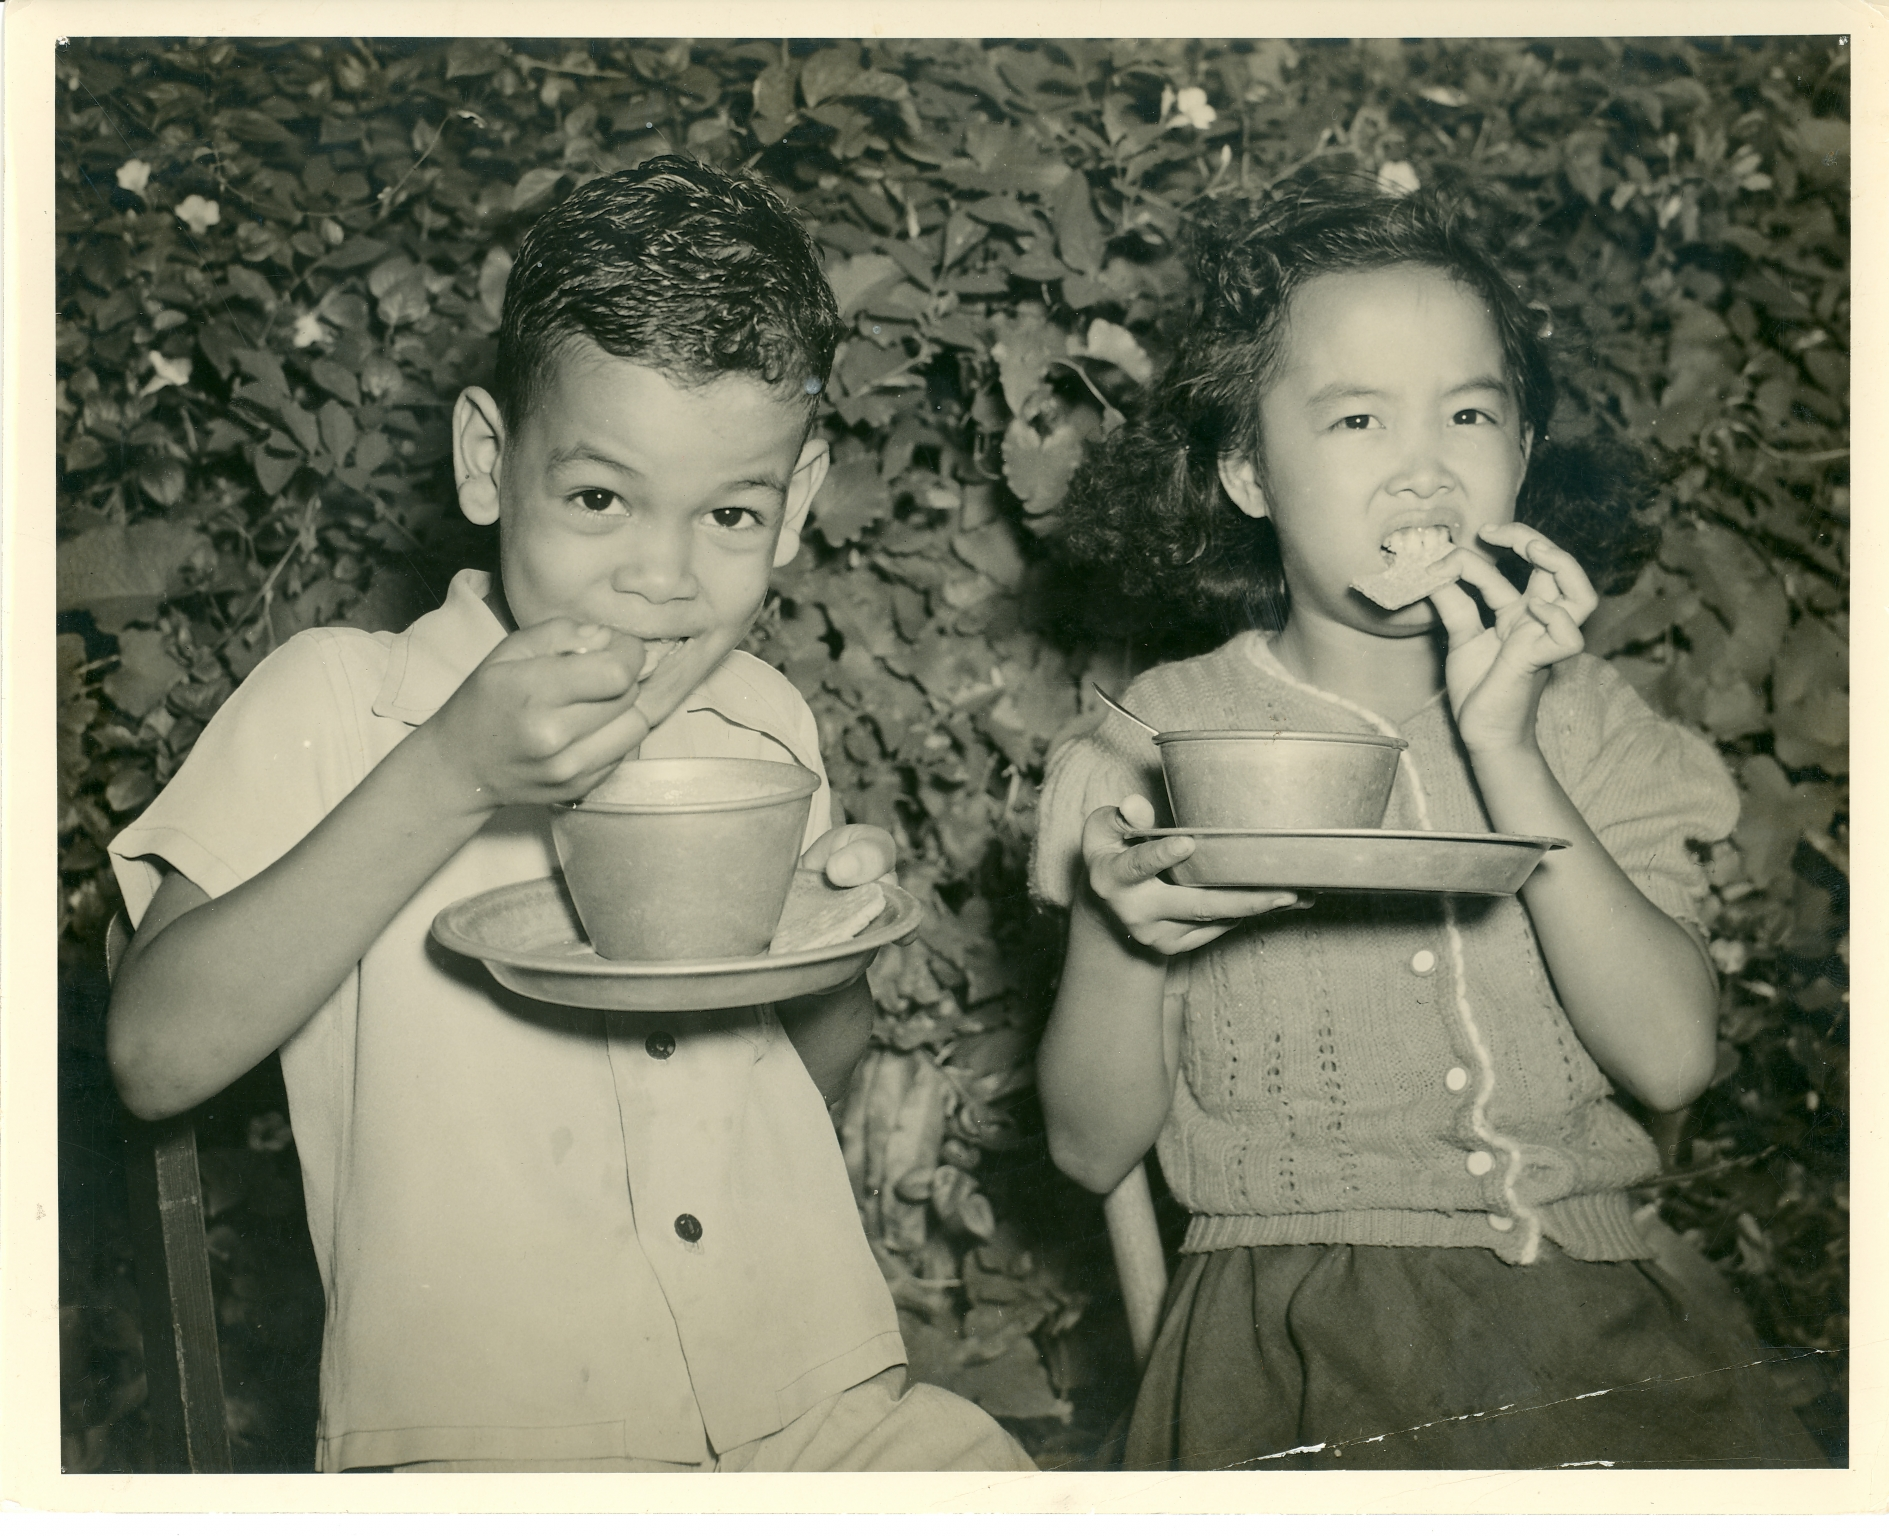 Children Eating Oct. 1941